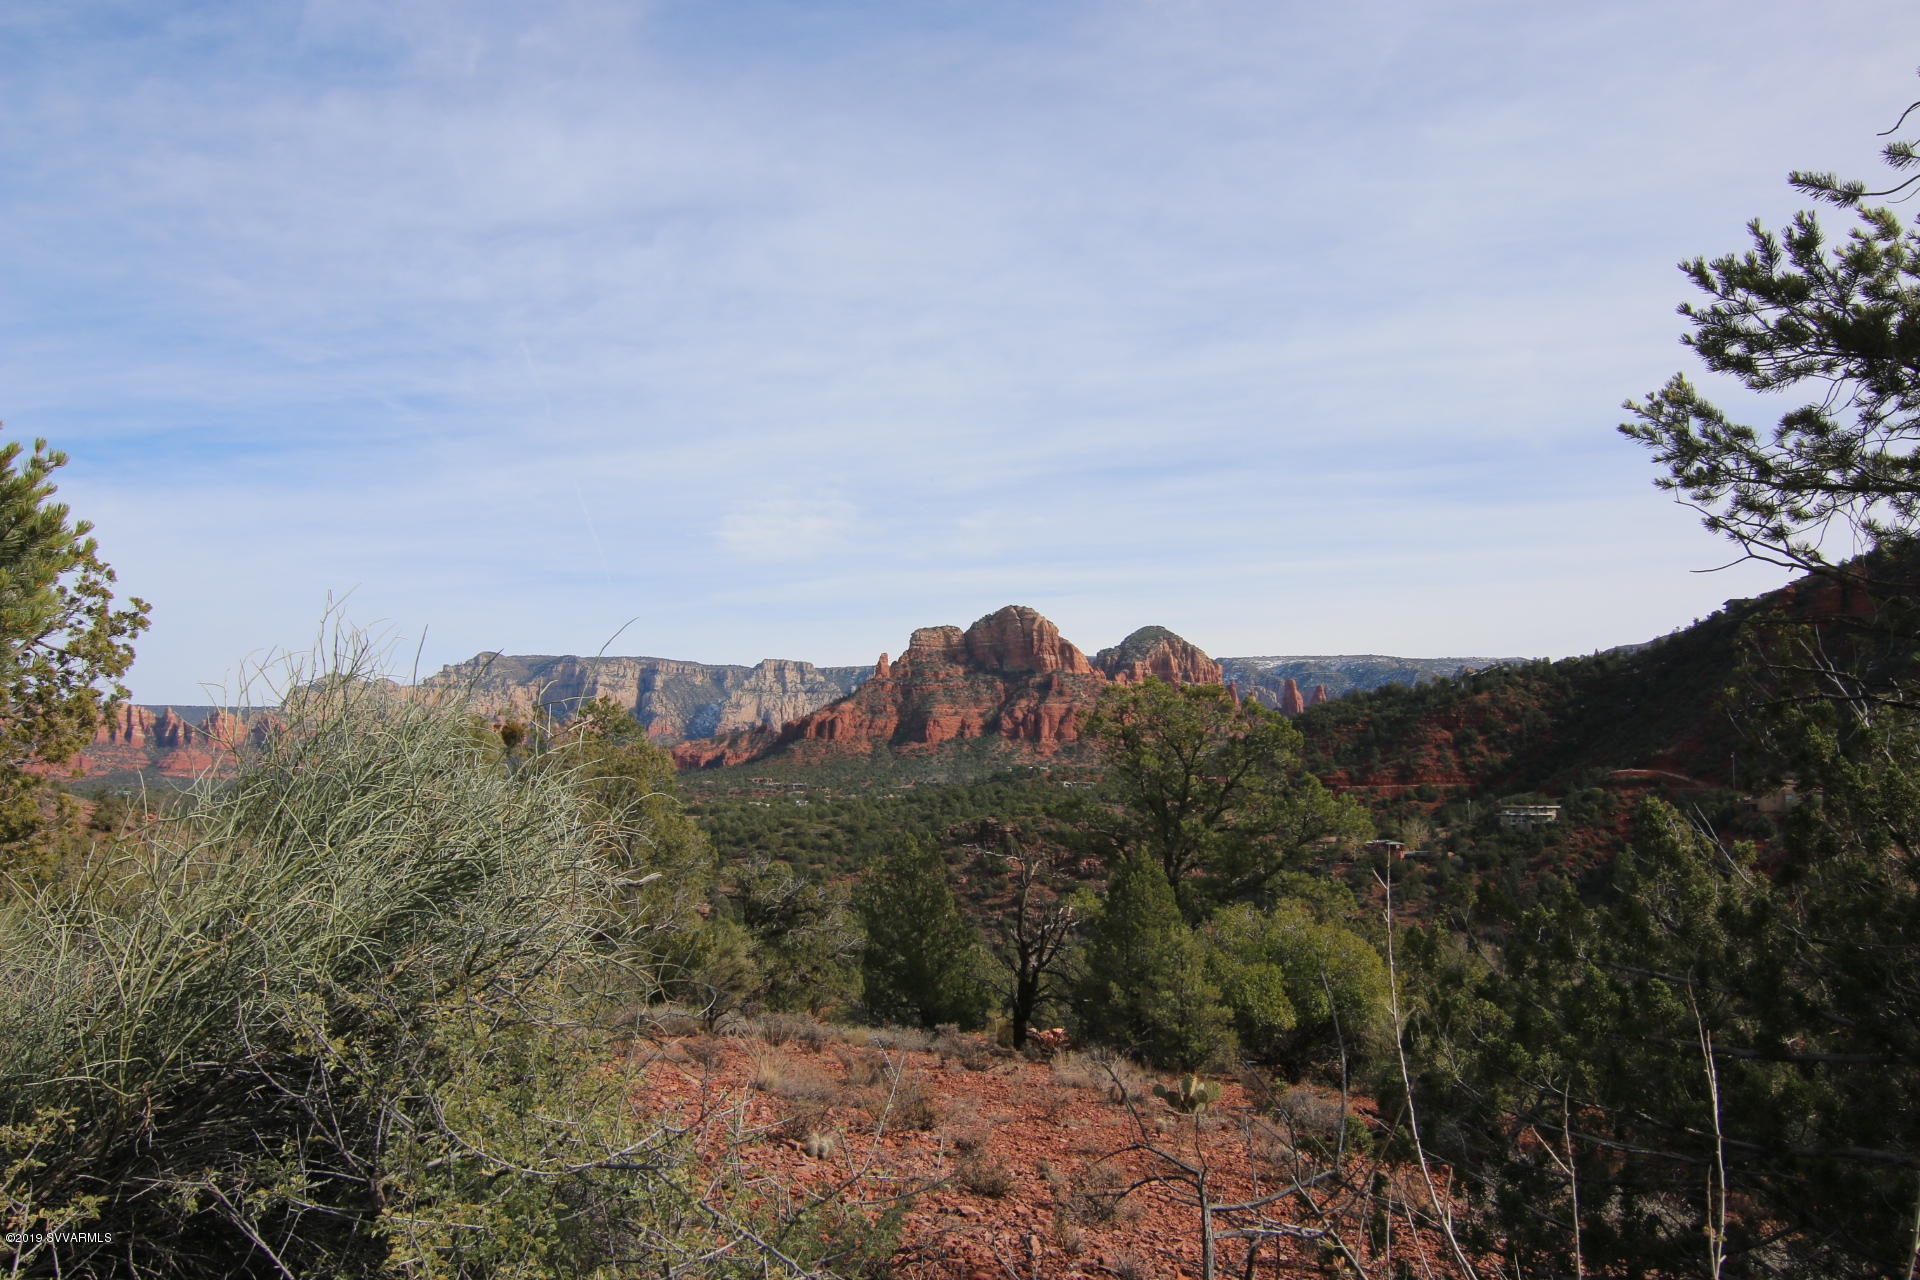 52 Pinnacle Sedona, AZ 86336